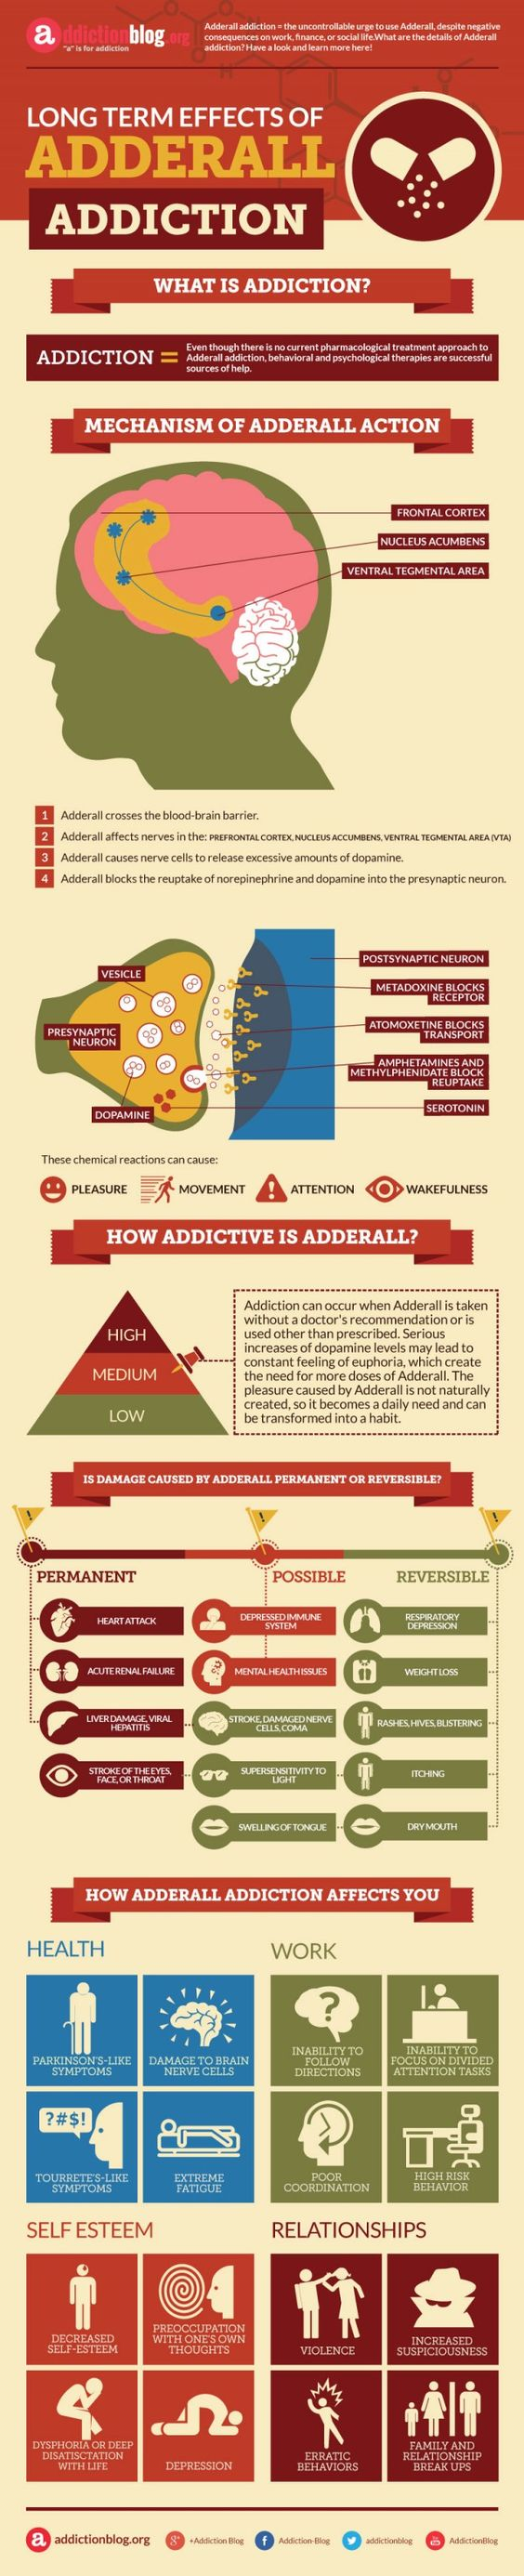 Long term effects of Adderall addiction (INFOGRAPHIC) | Addiction Blog